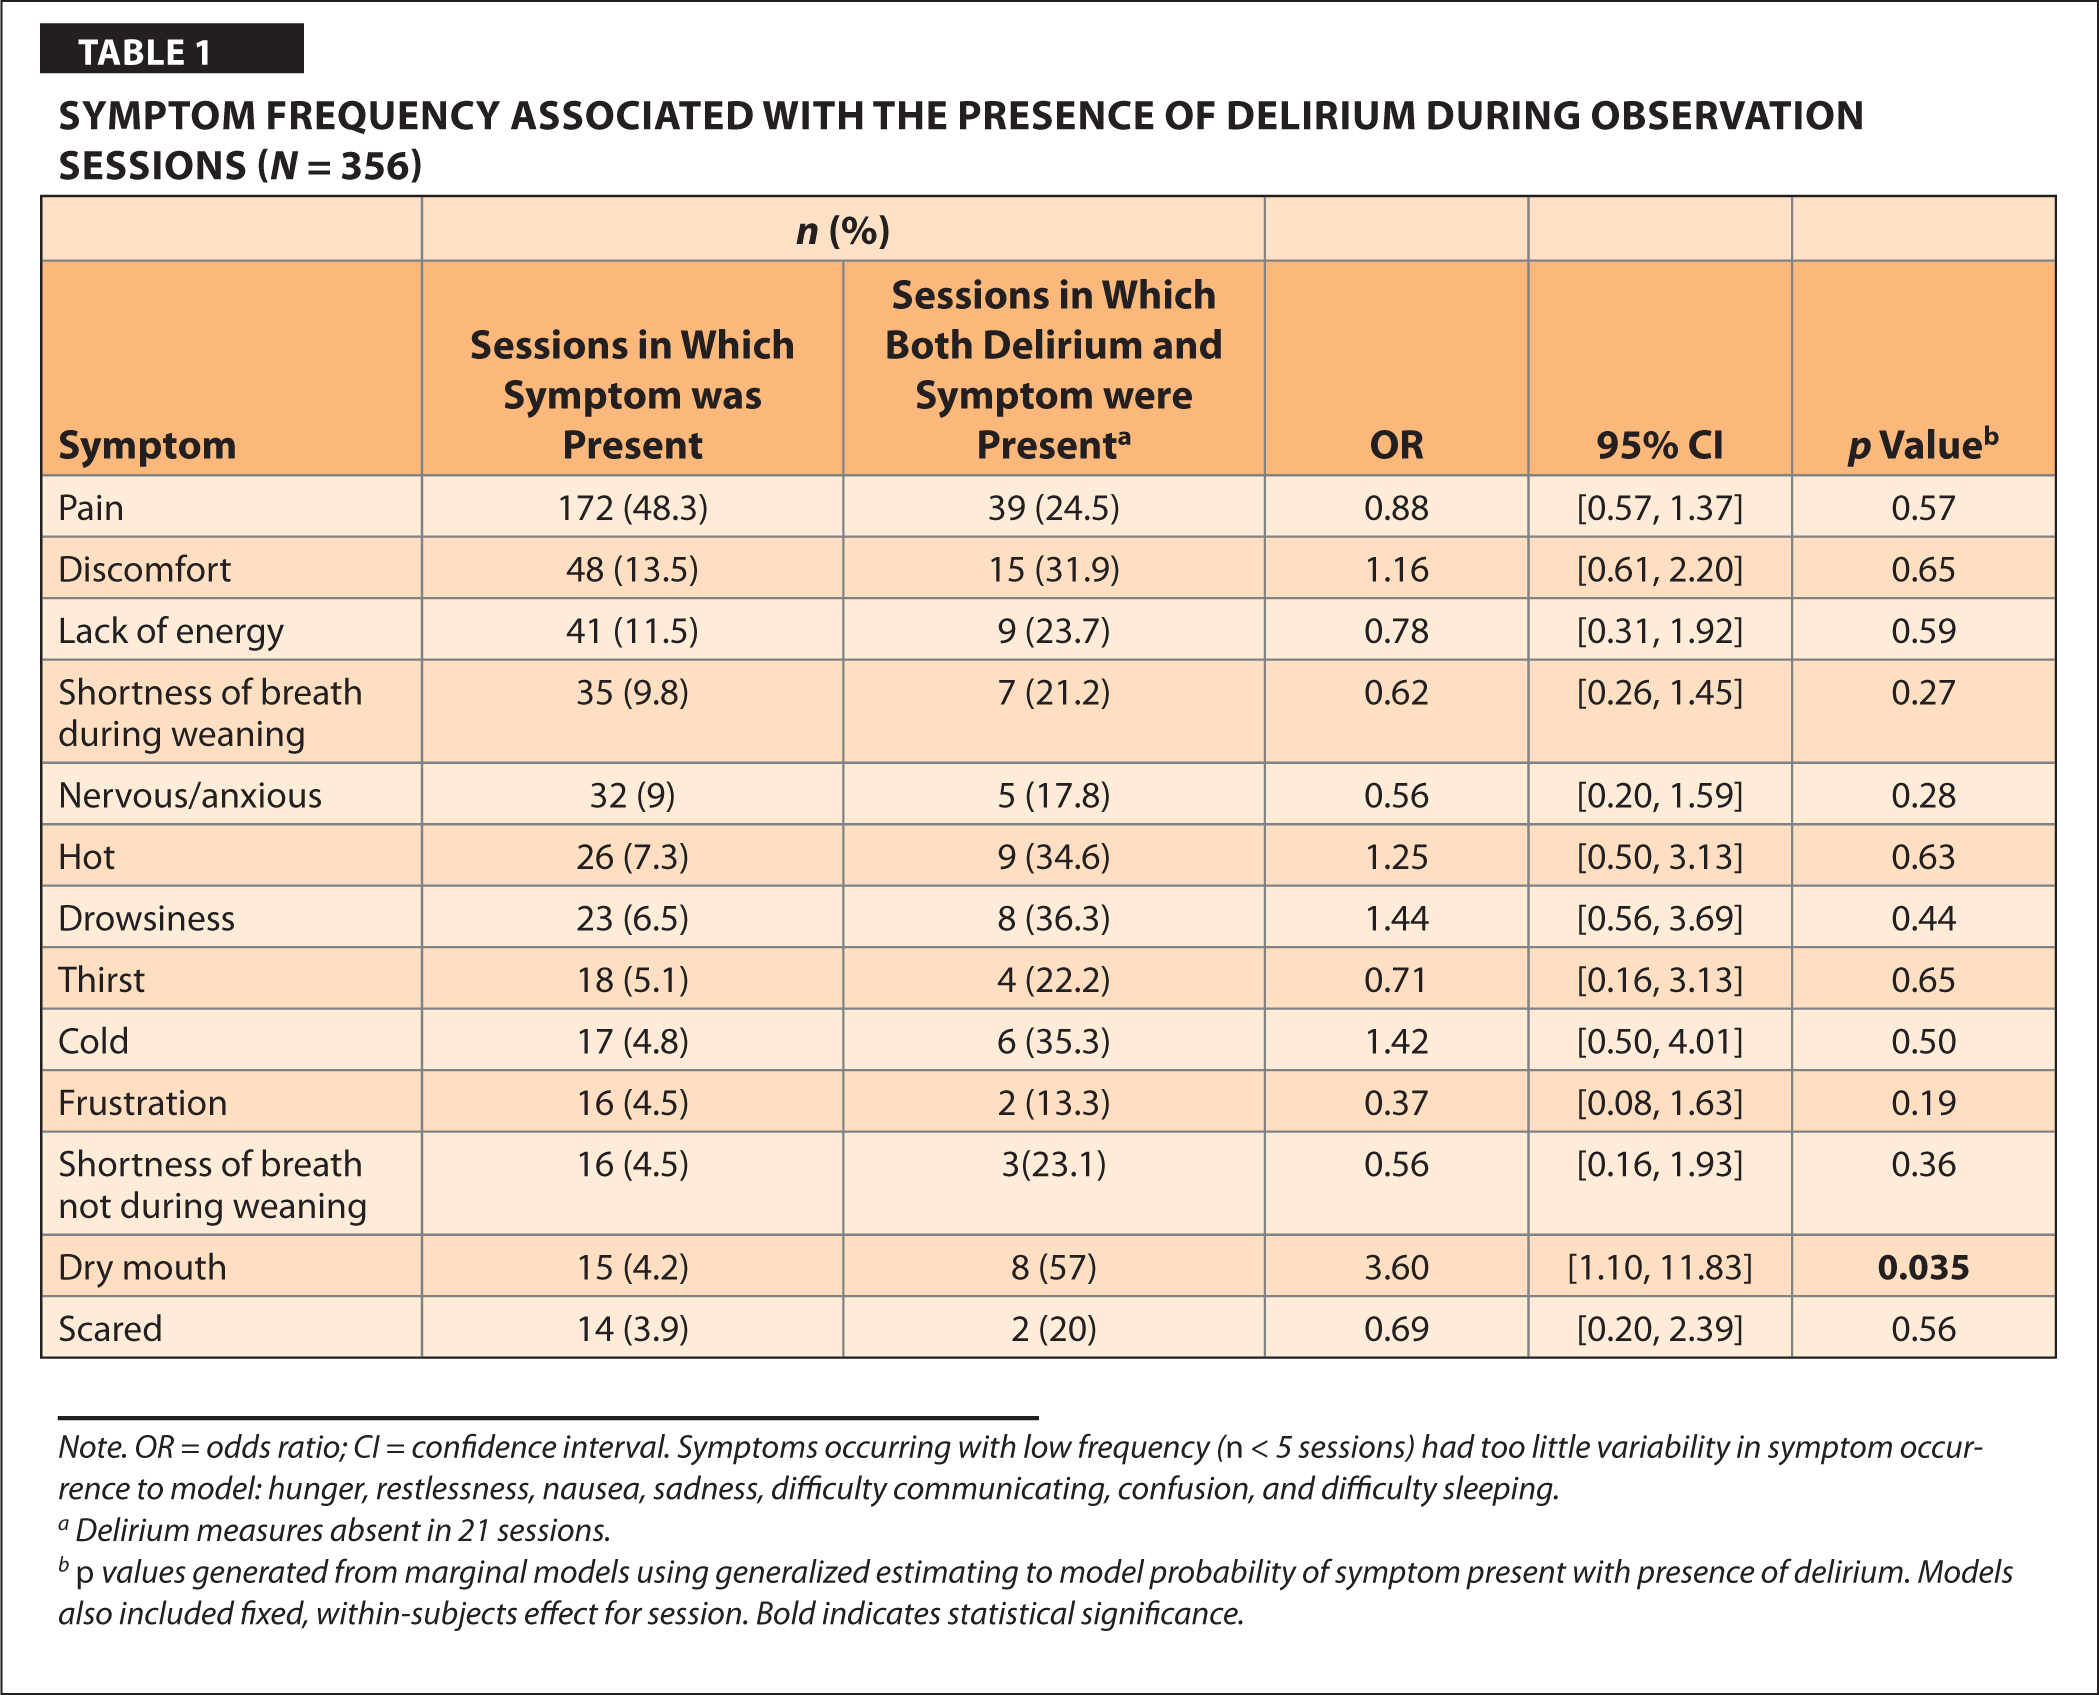 Symptom Frequency Associated with the Presence of Delirium During Observation Sessions (N = 356)